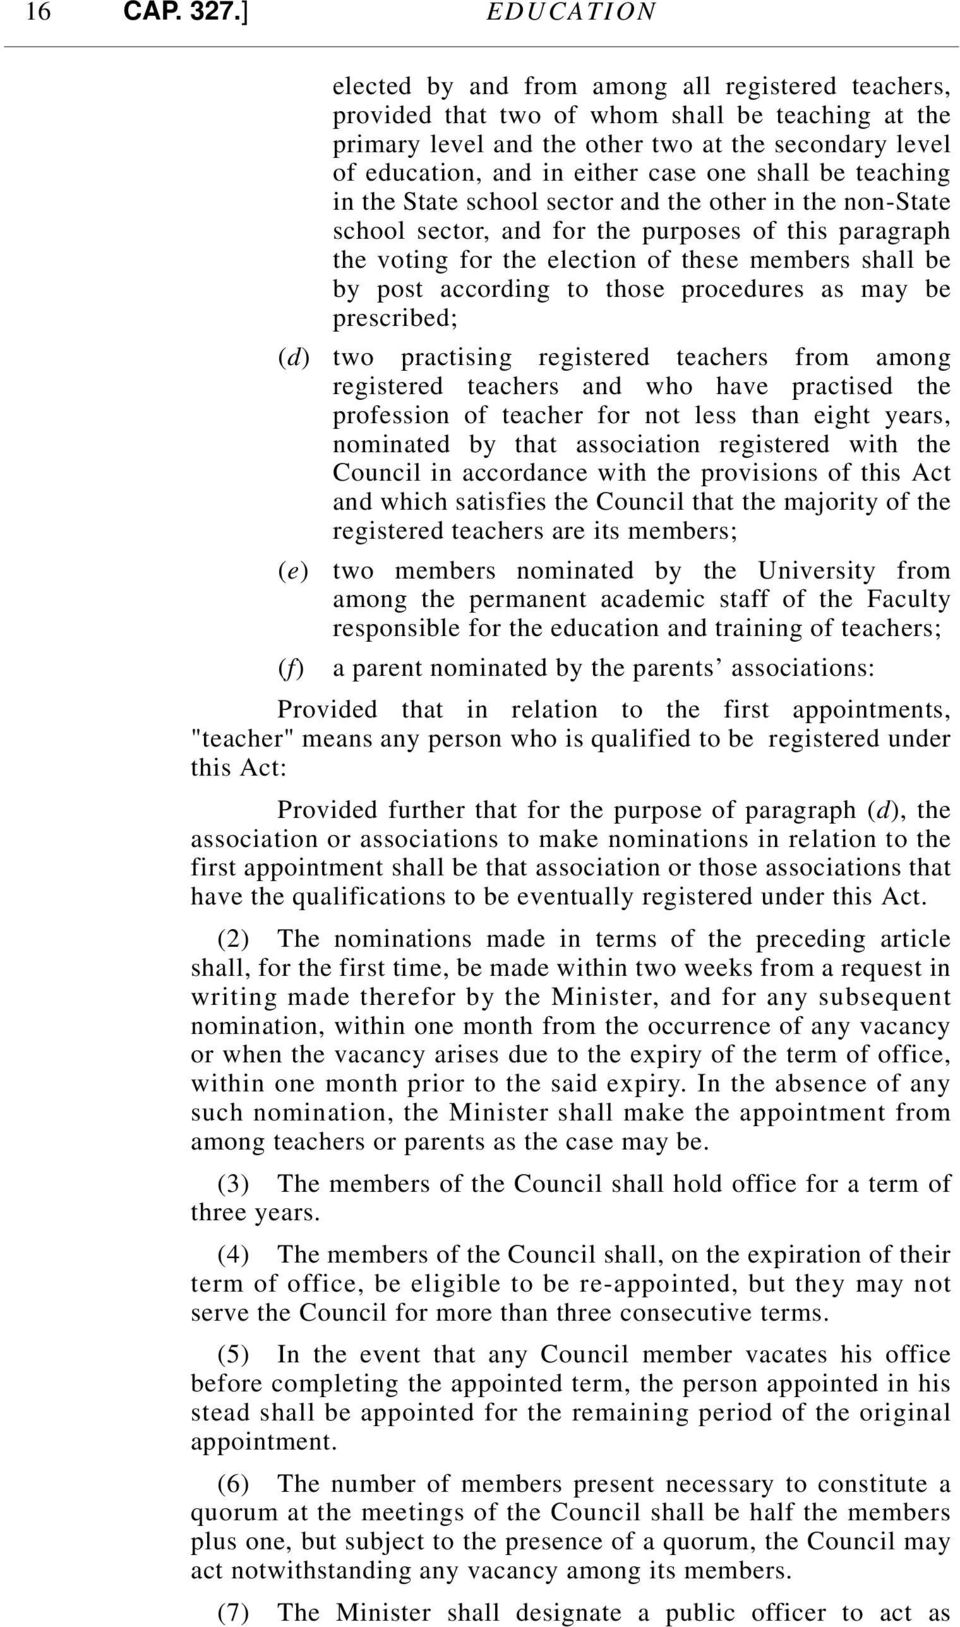 case one shall be teaching in the State school sector and the other in the non-state school sector, and for the purposes of this paragraph the voting for the election of these members shall be by